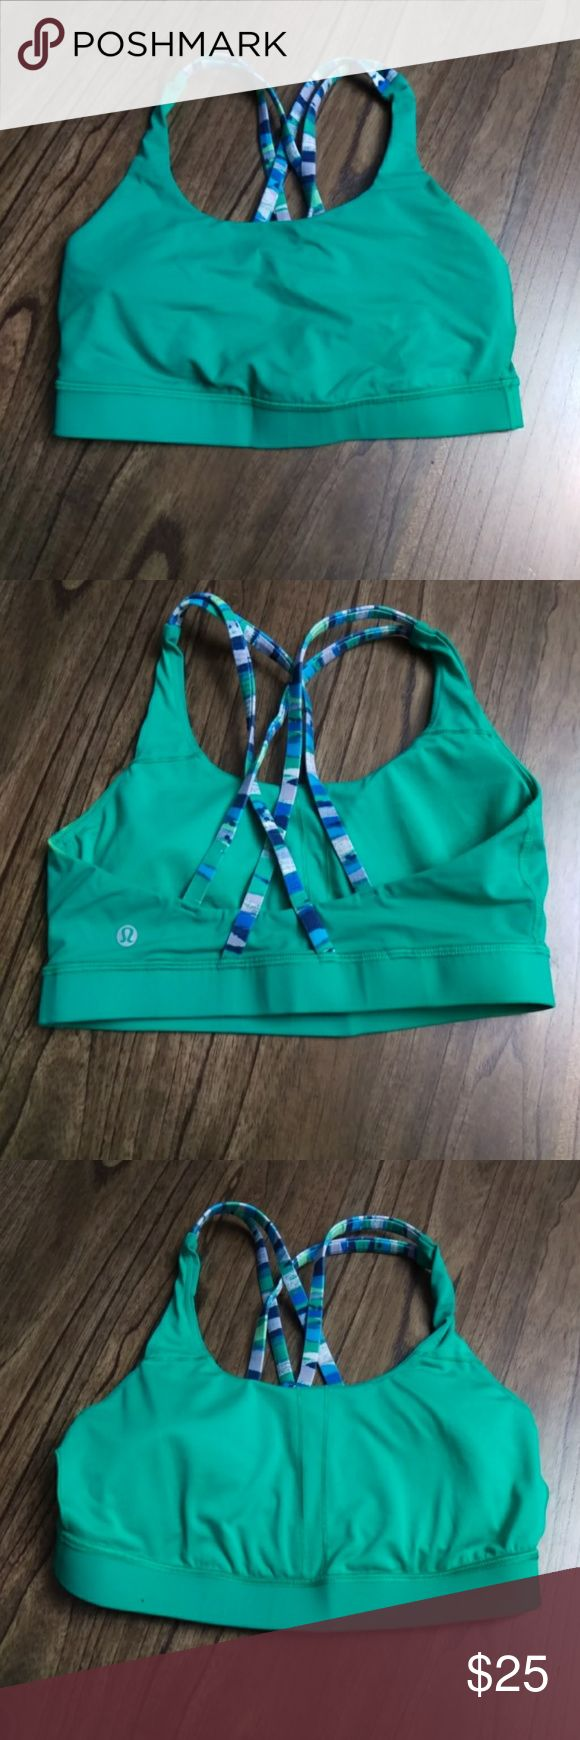 Lululemon Energy Bra  Jungle / Seven Wonders Multi Pre-owned in good shape. Size 8. Breathe (and sweat!) easy in this Sun Salutation-approved yoga bra. Luxtreme Cool-to-the-touch Luxtreme fabric is four-way stretch and sweat-wicking—we added LYCRA fibre for shape retention sweat-wicking four-way stretch cool smooth handfeel shape retention LYCRA®Added LYCRA® fibre for great shape retention stretch great shape retention long-lasting comfort lululemon athletica Intimates & Sleepwear Bras…